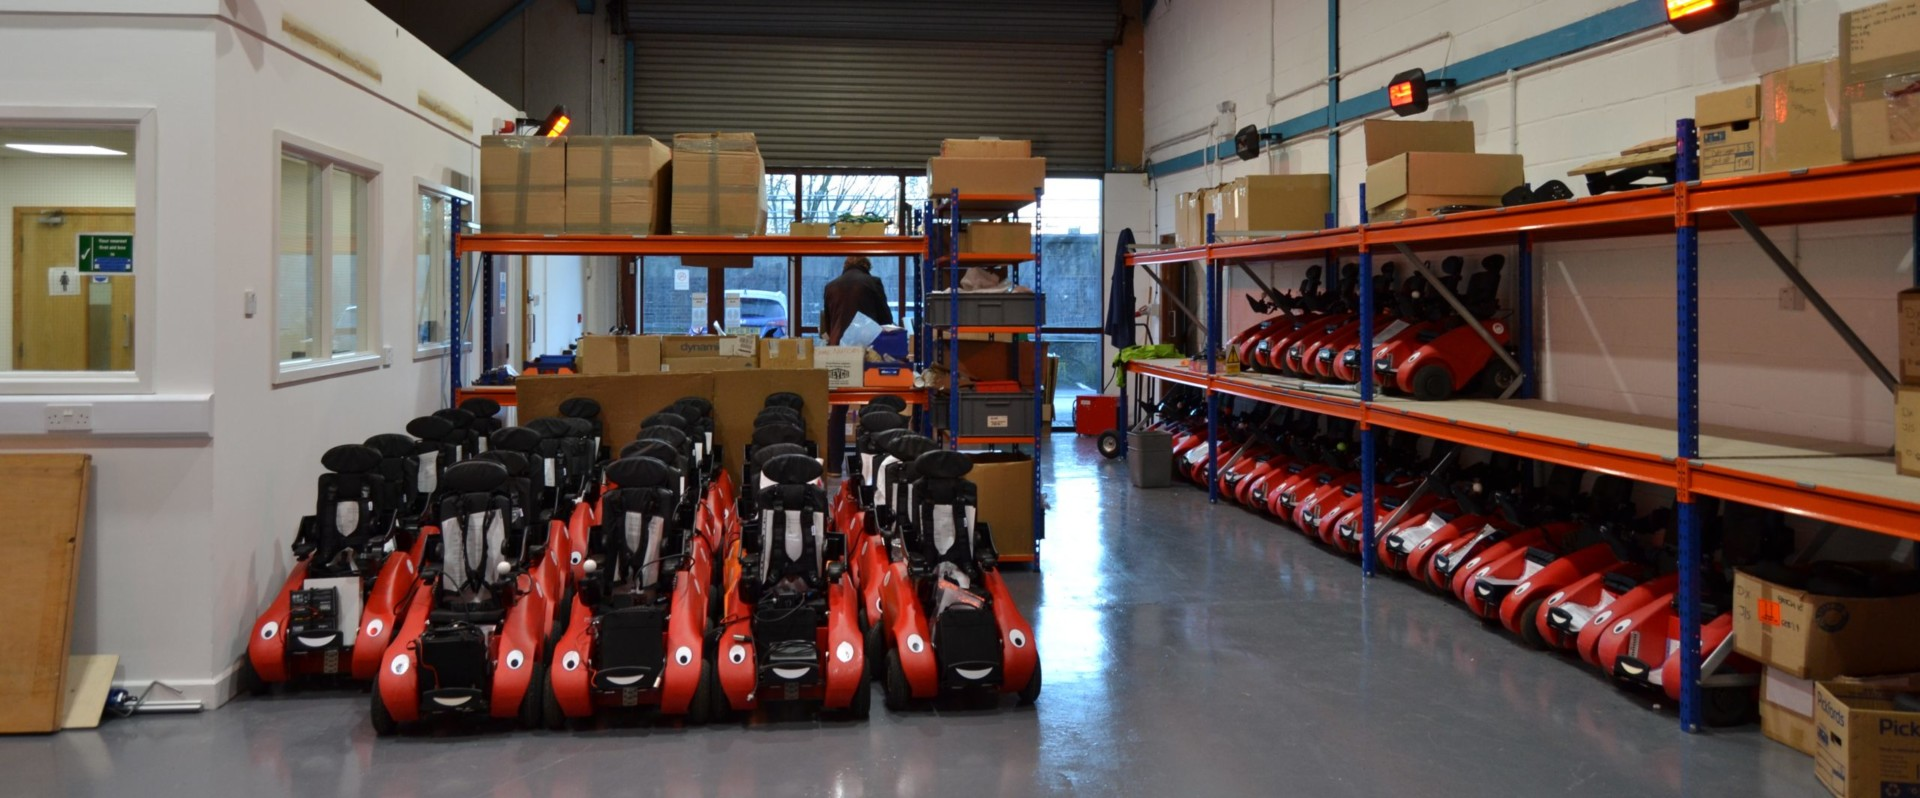 Wizzybug powered wheelchairs in a workshop